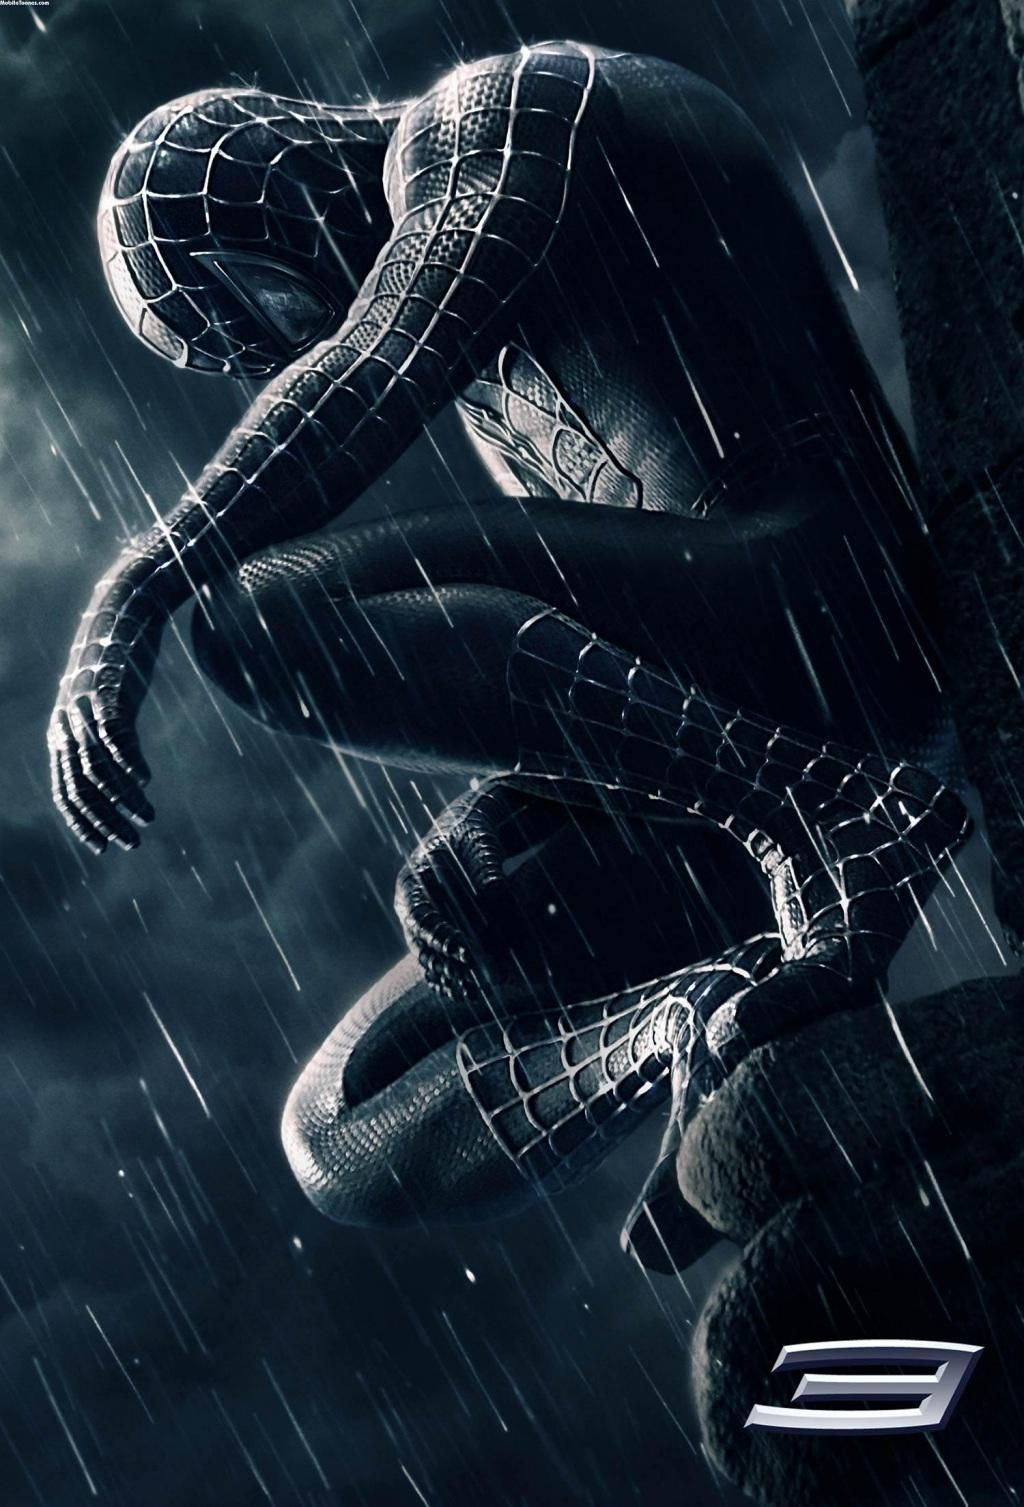 Full Hd Wallpapers For Mobile Spiderman Black Spiderman Spiderman 3